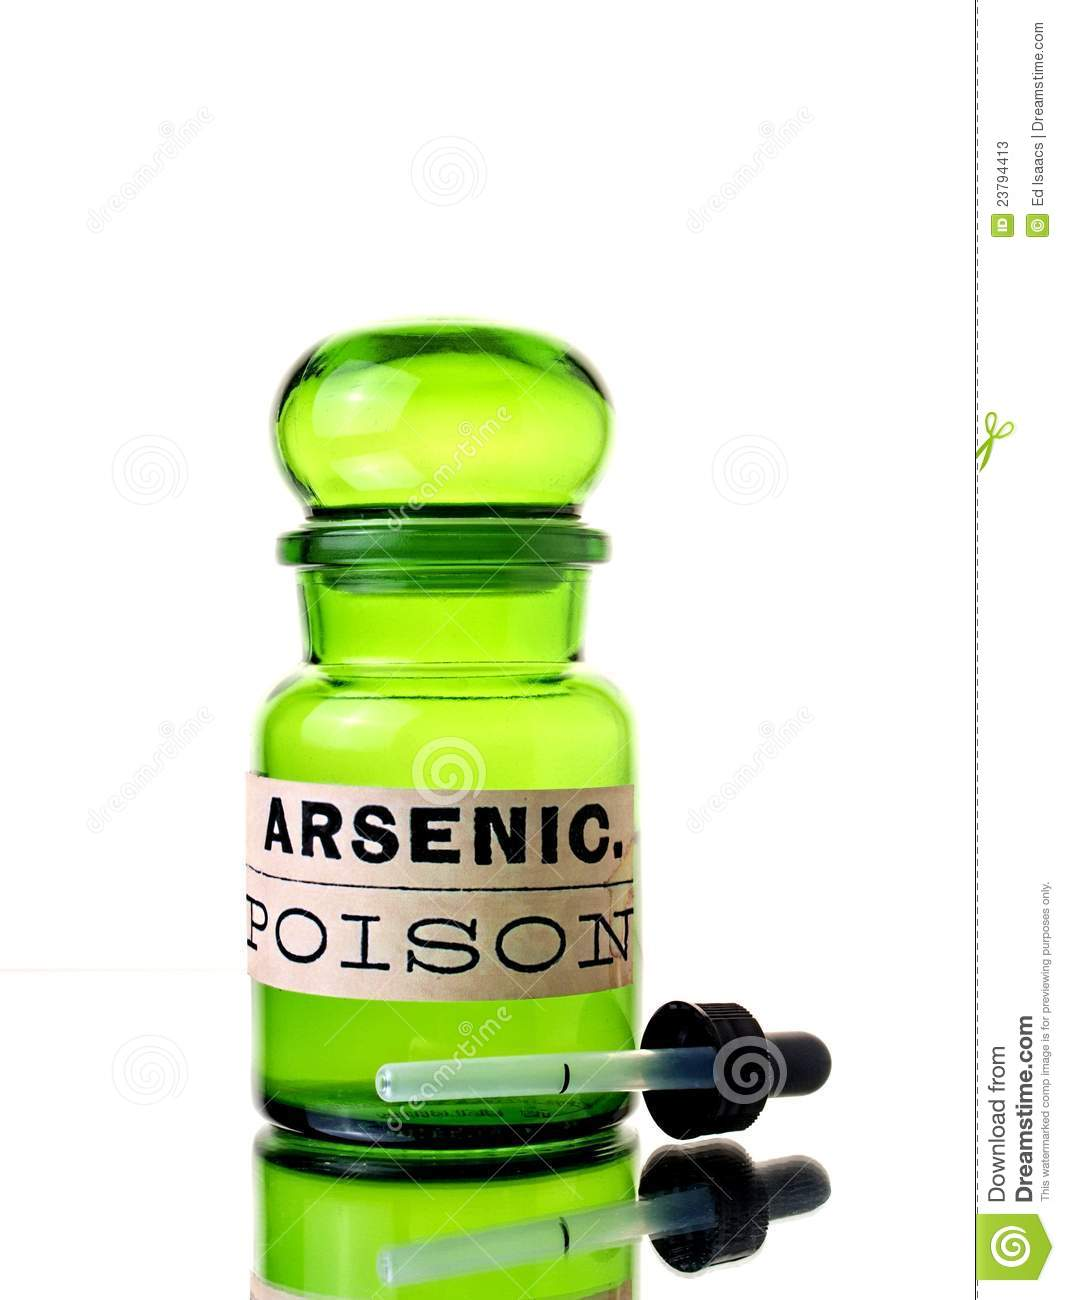 Arsenic Bottle Stock Photos - Image: 23794413